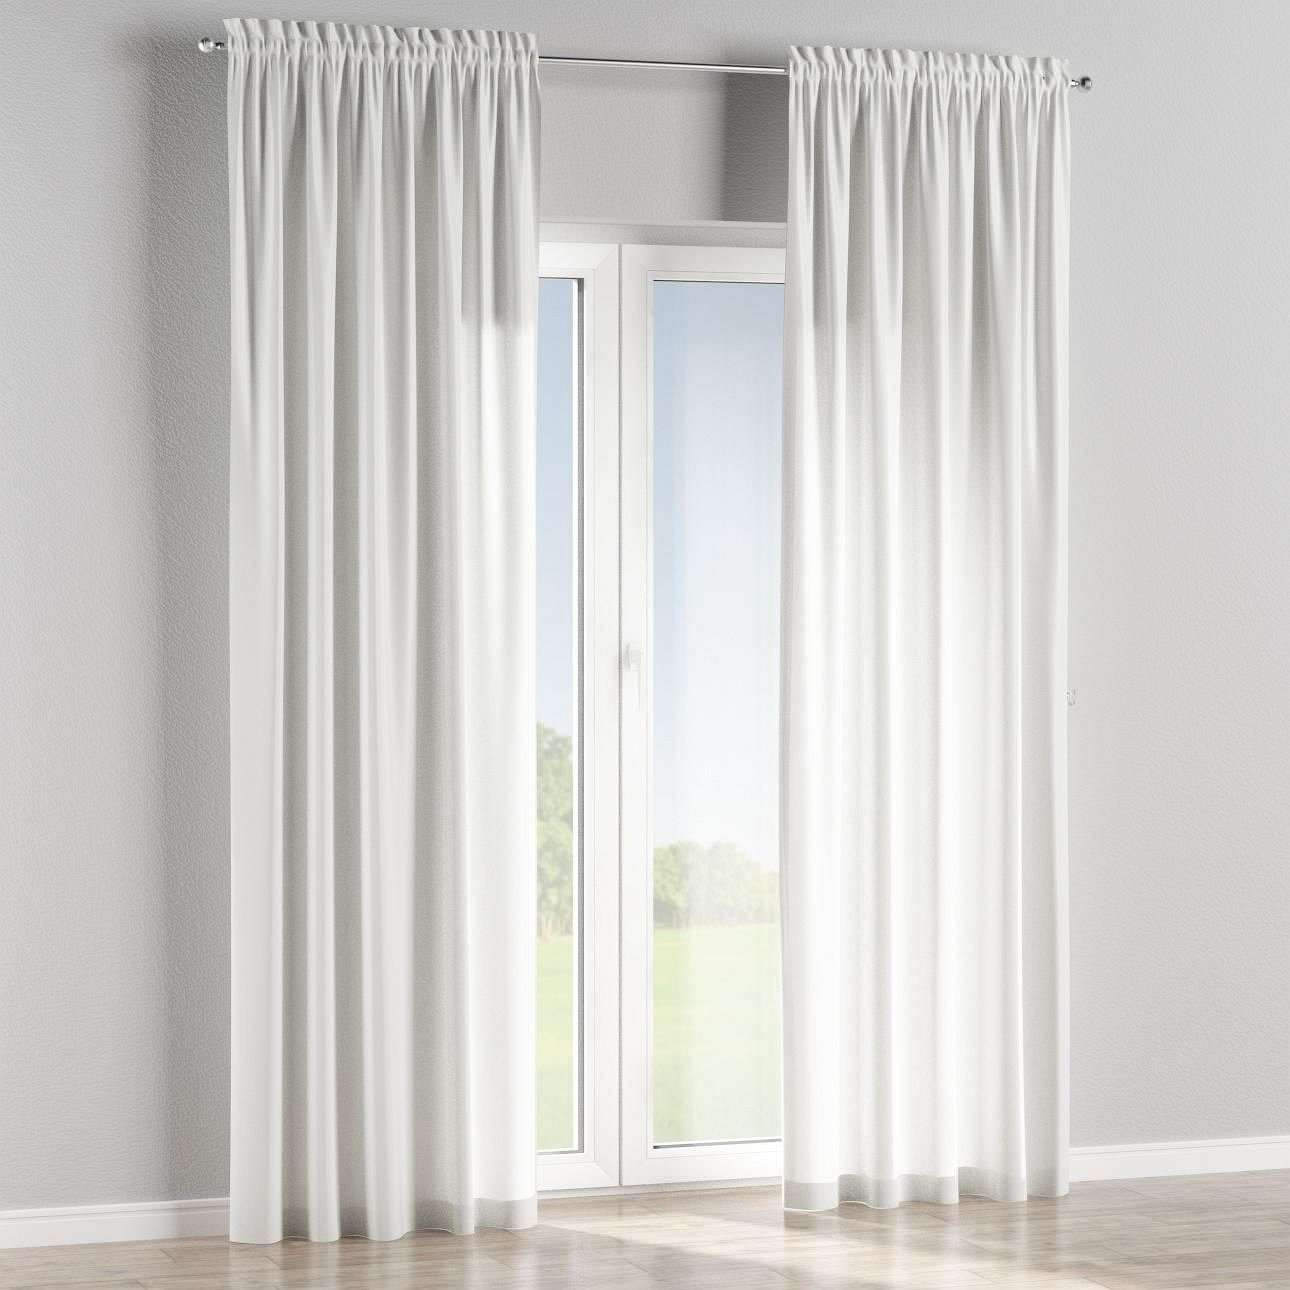 Slot and frill lined curtains in collection Ashley, fabric: 137-46